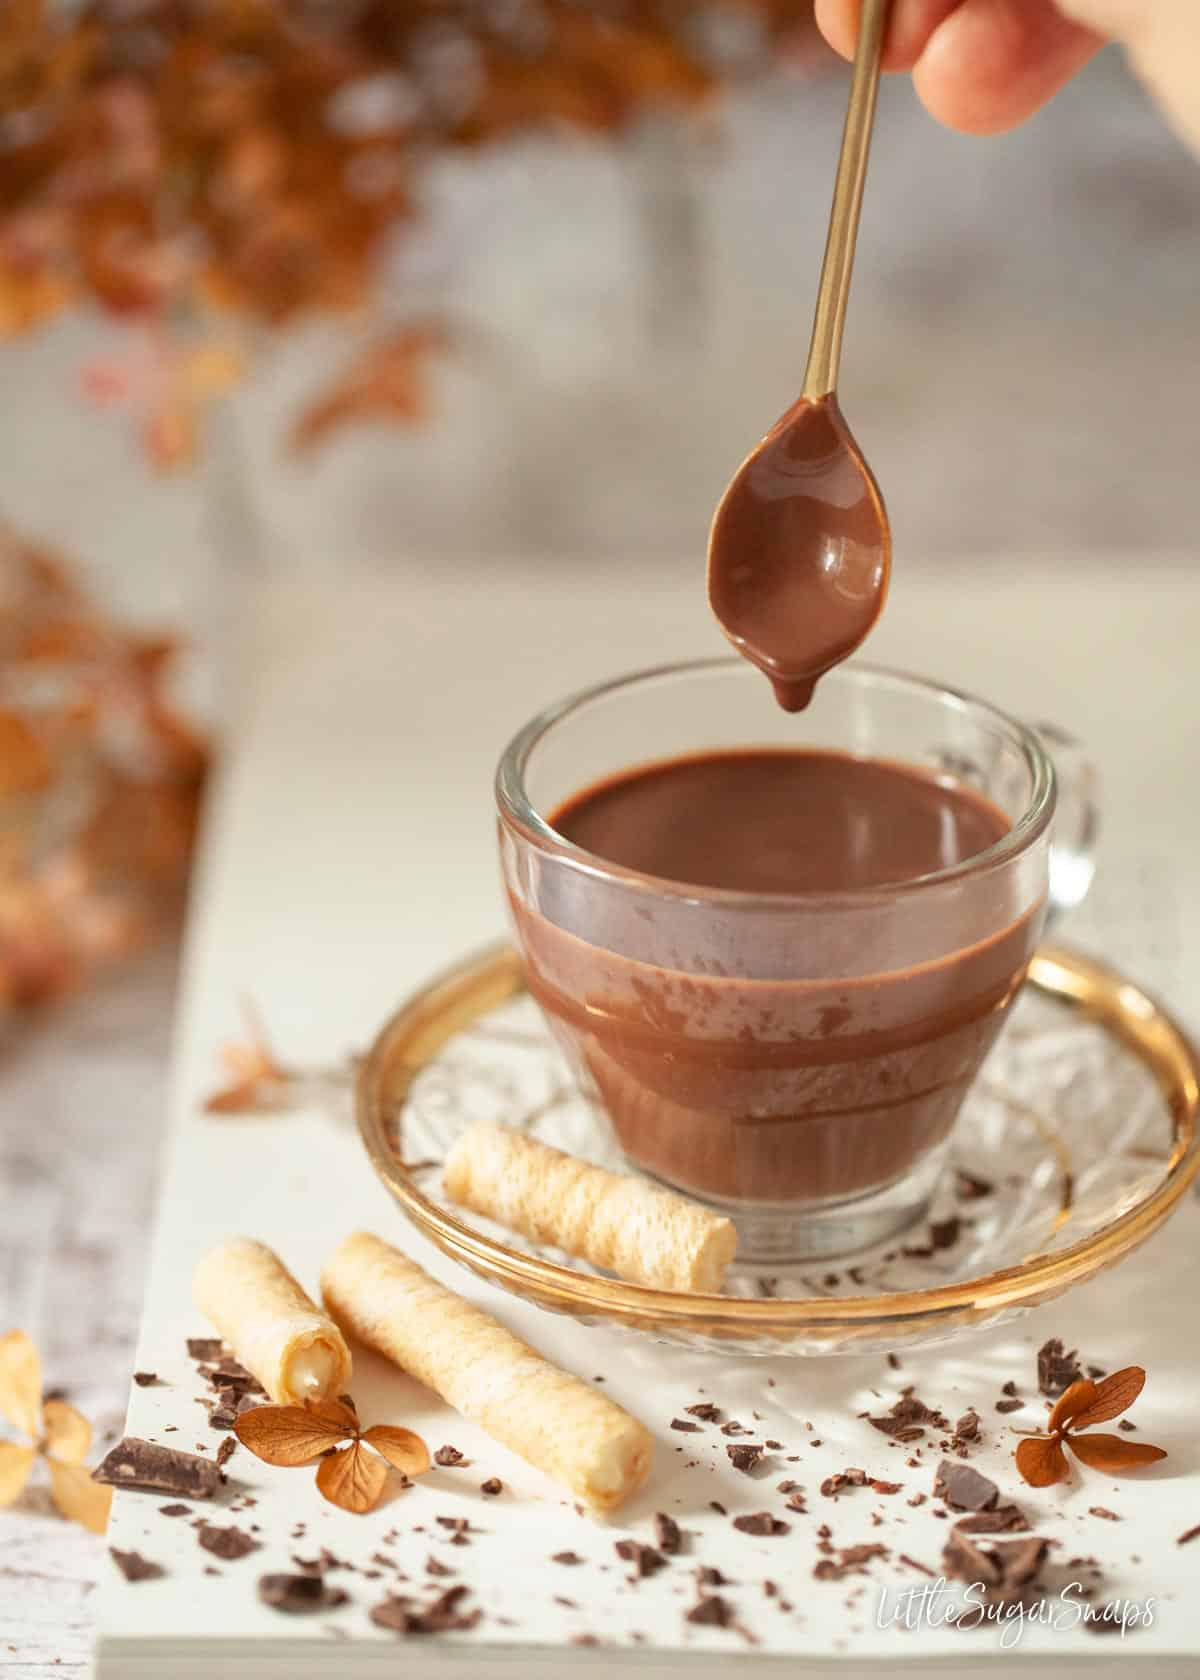 Thick Italian hot chocolate in a glass cup with a spoon being dipped in.